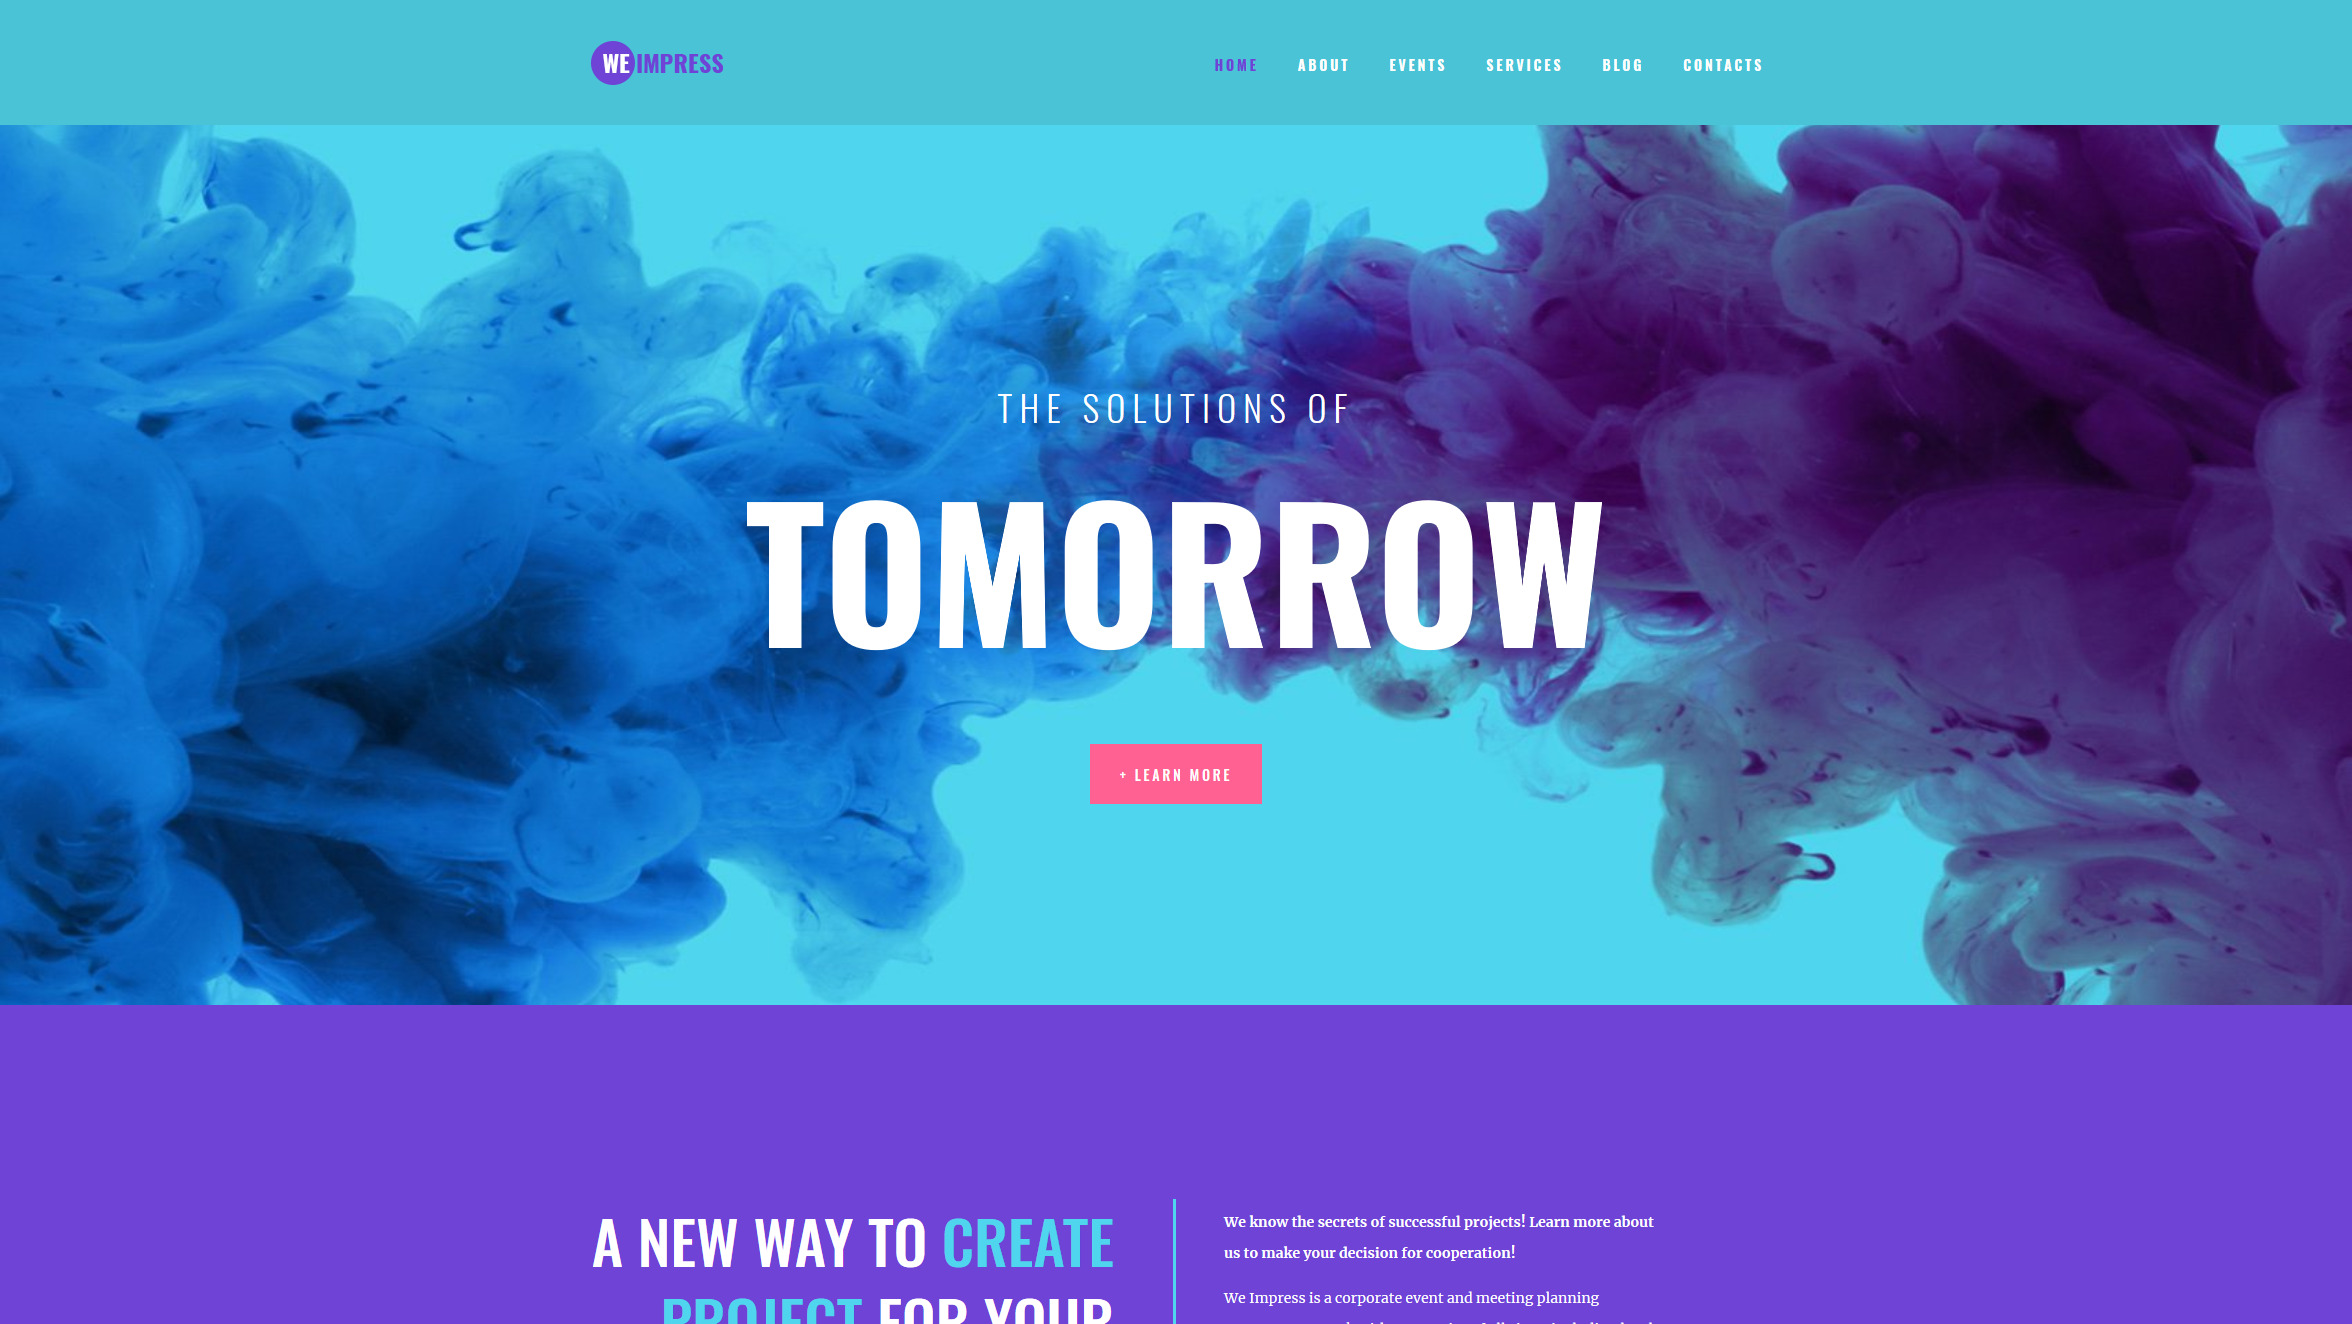 Weimpress – Just another WordPress site